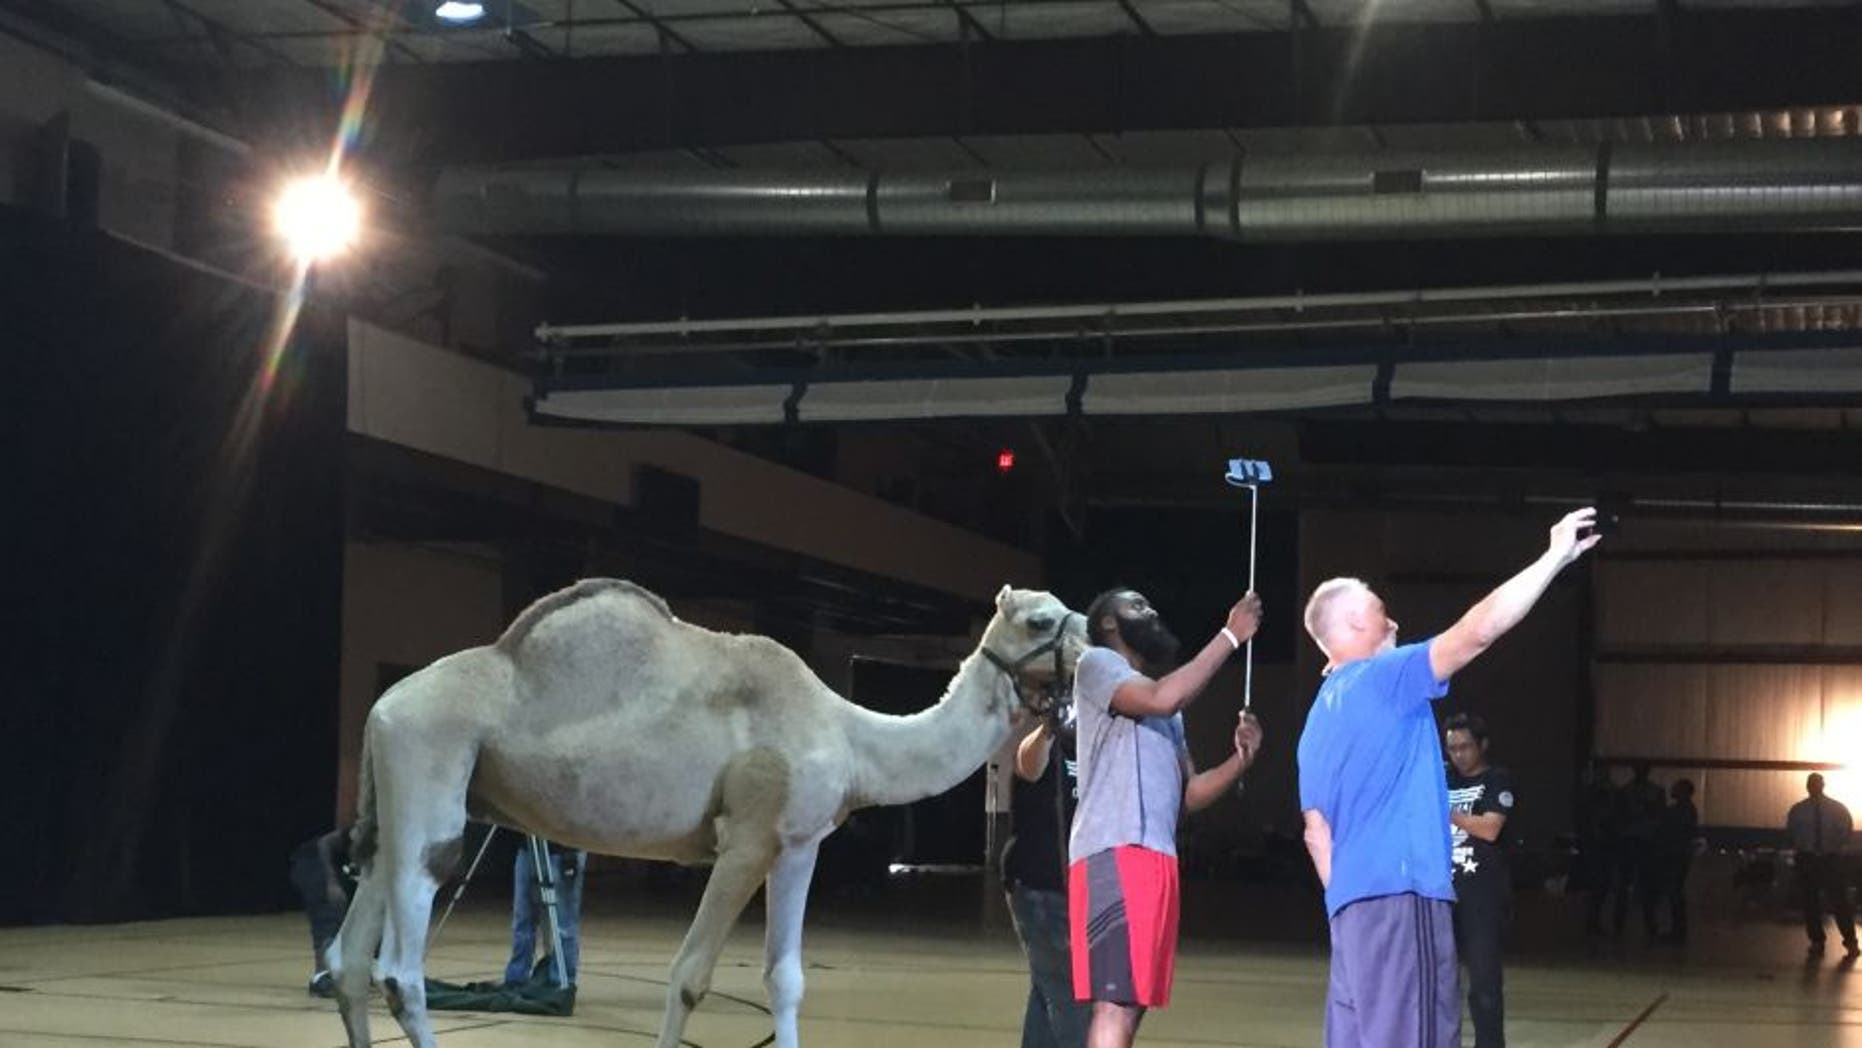 """James Harden takes a selfie with a camel at Foot Locker's """"Play My Tweet"""" event"""